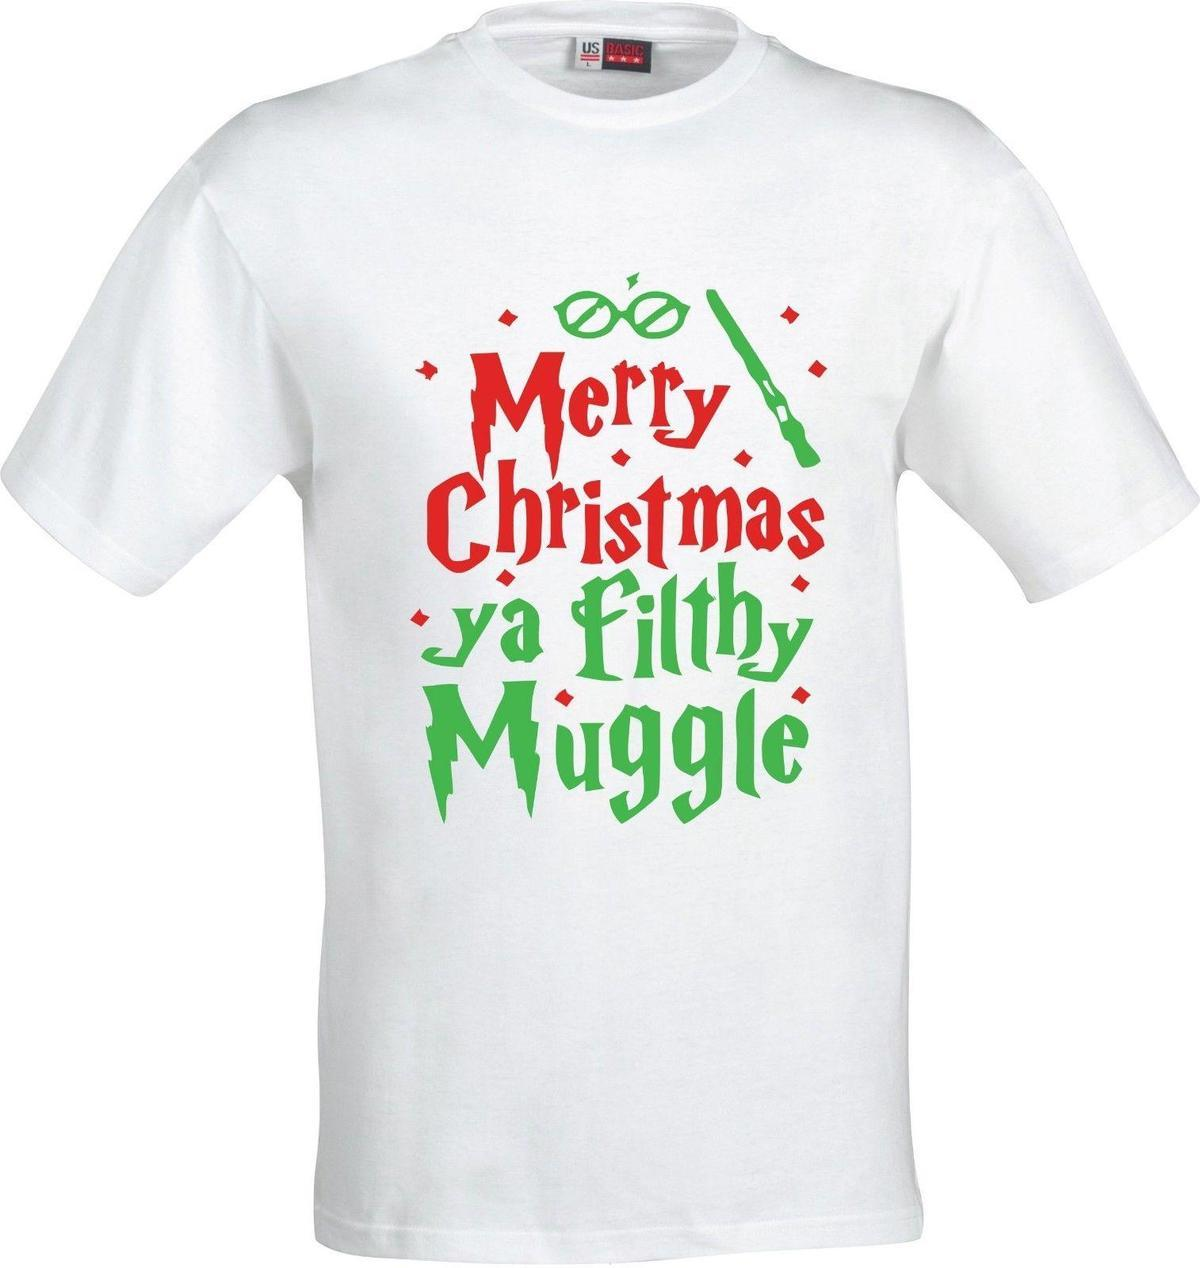 merry christmas you filthy muggle harry potter full color sublimation t shirt cotton t shirt create t shirts from liguo01 1196 dhgatecom